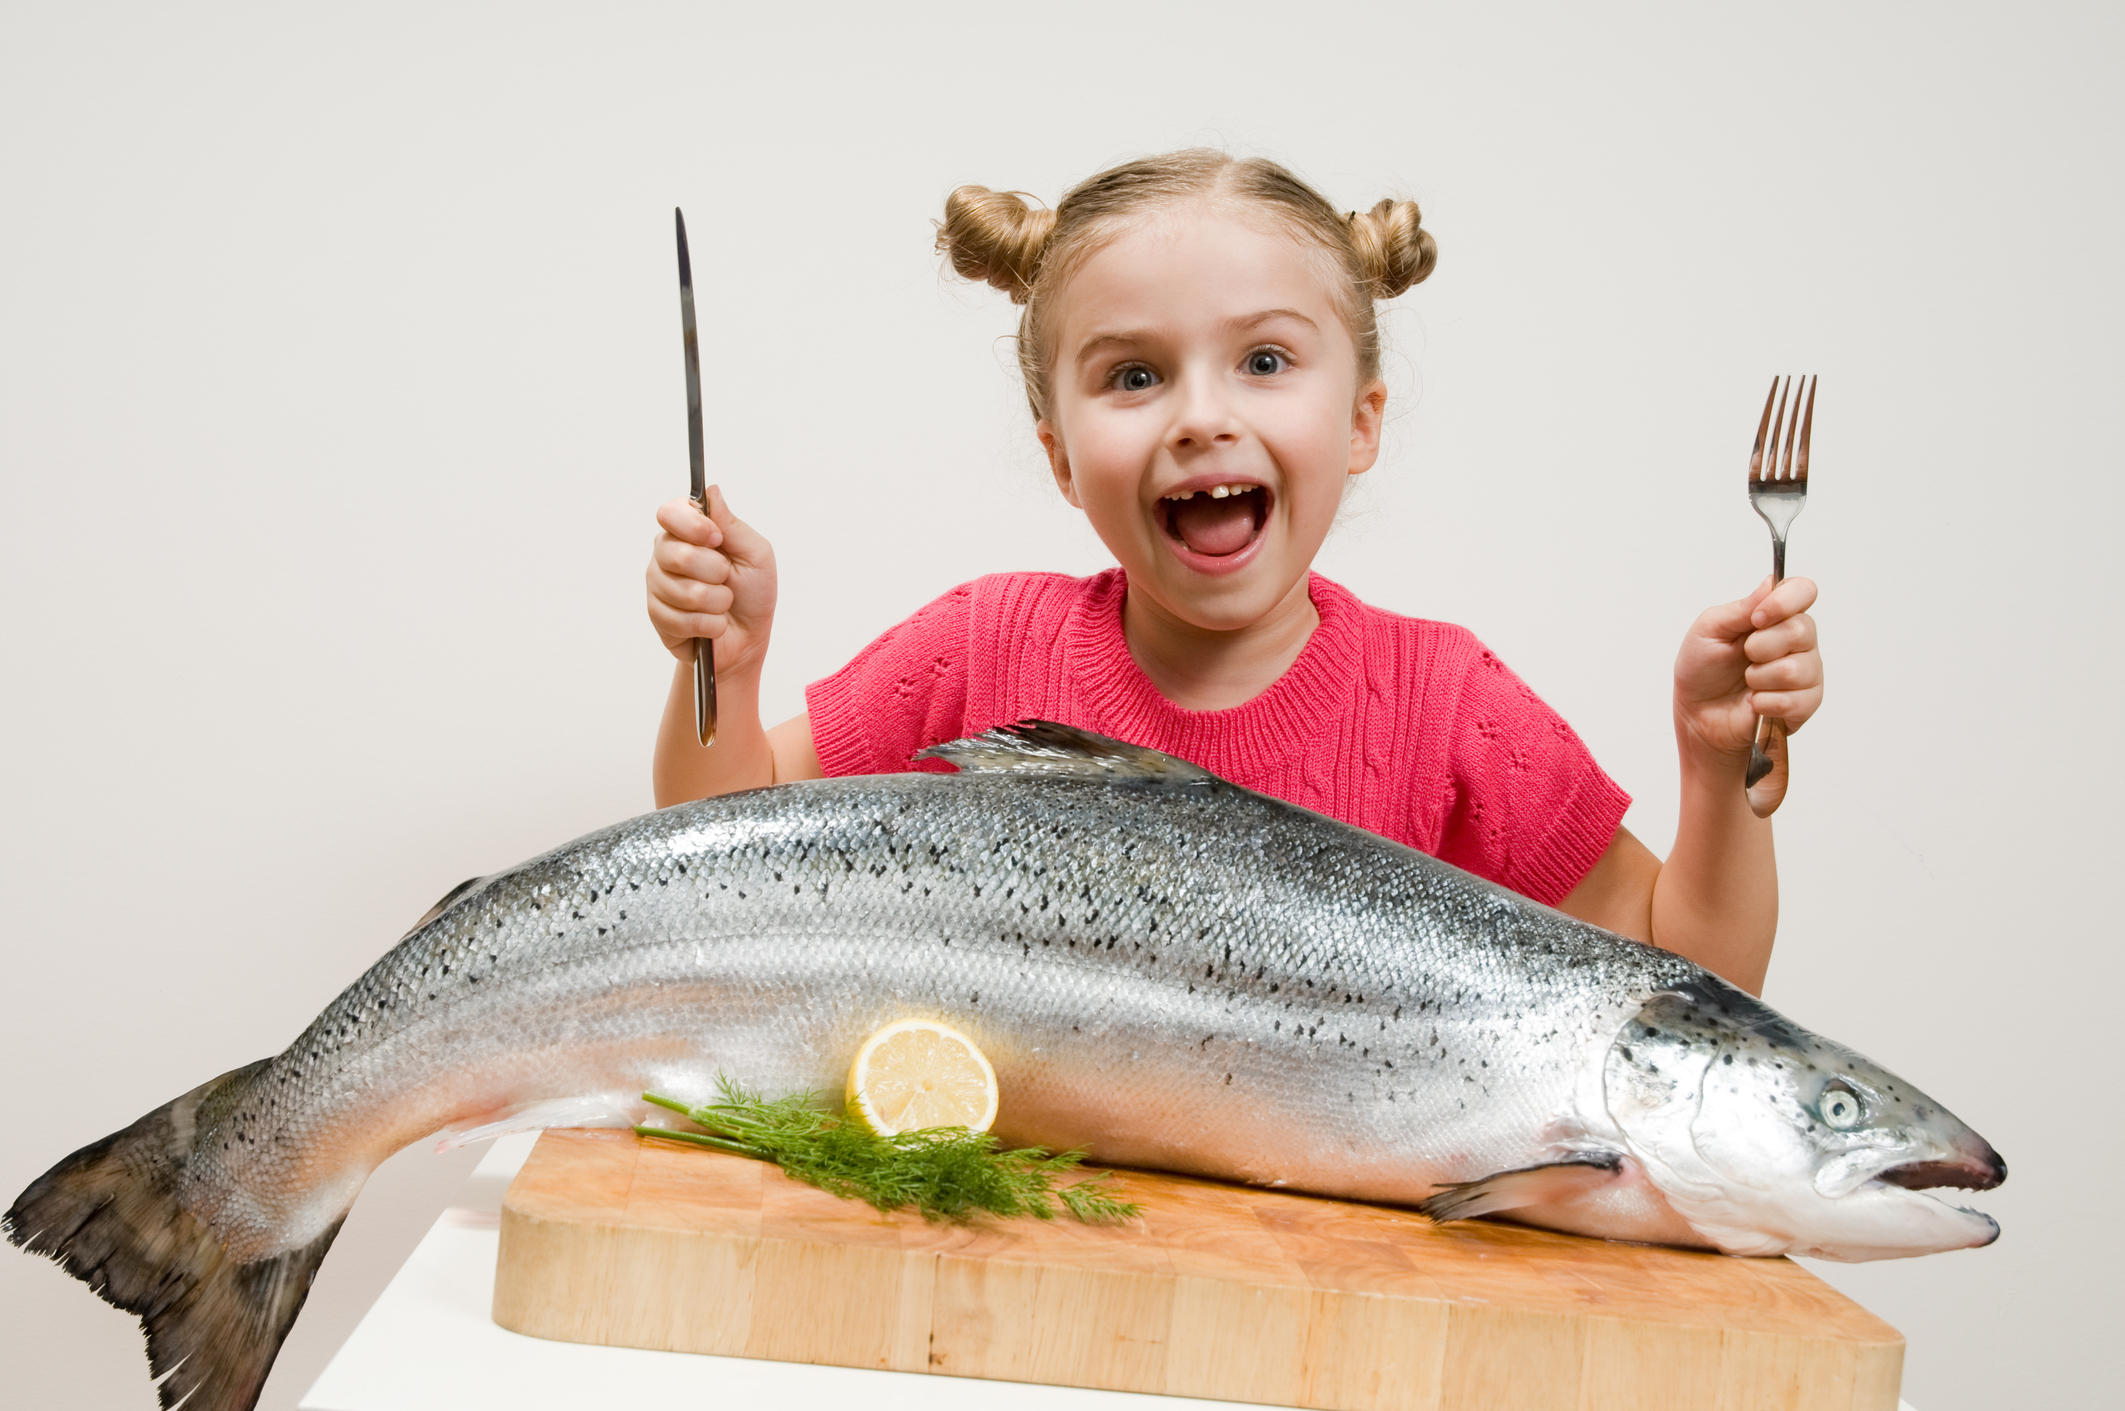 Eating fish may make kids smarter and help them sleep for Fish that eat other fish